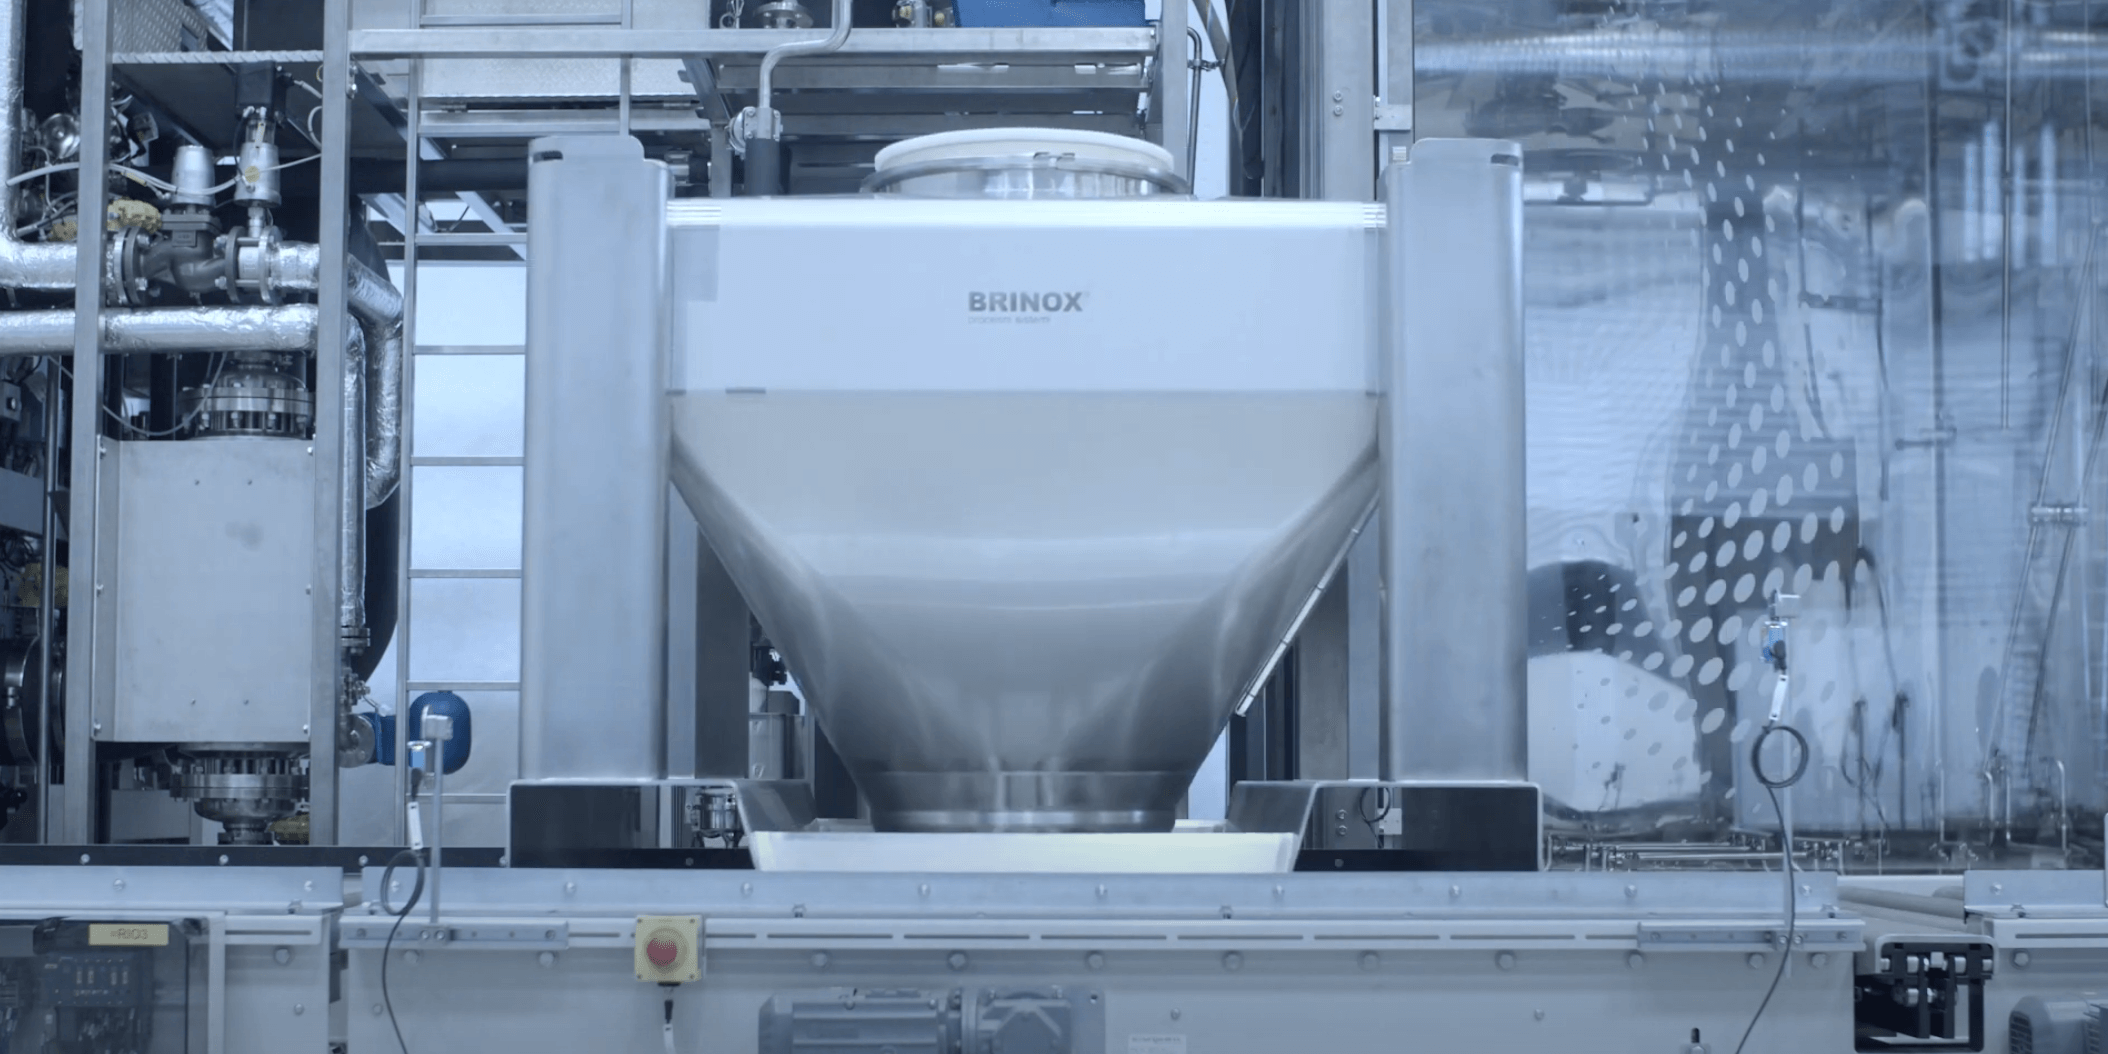 Brinox automatic IBC Washer with transport system